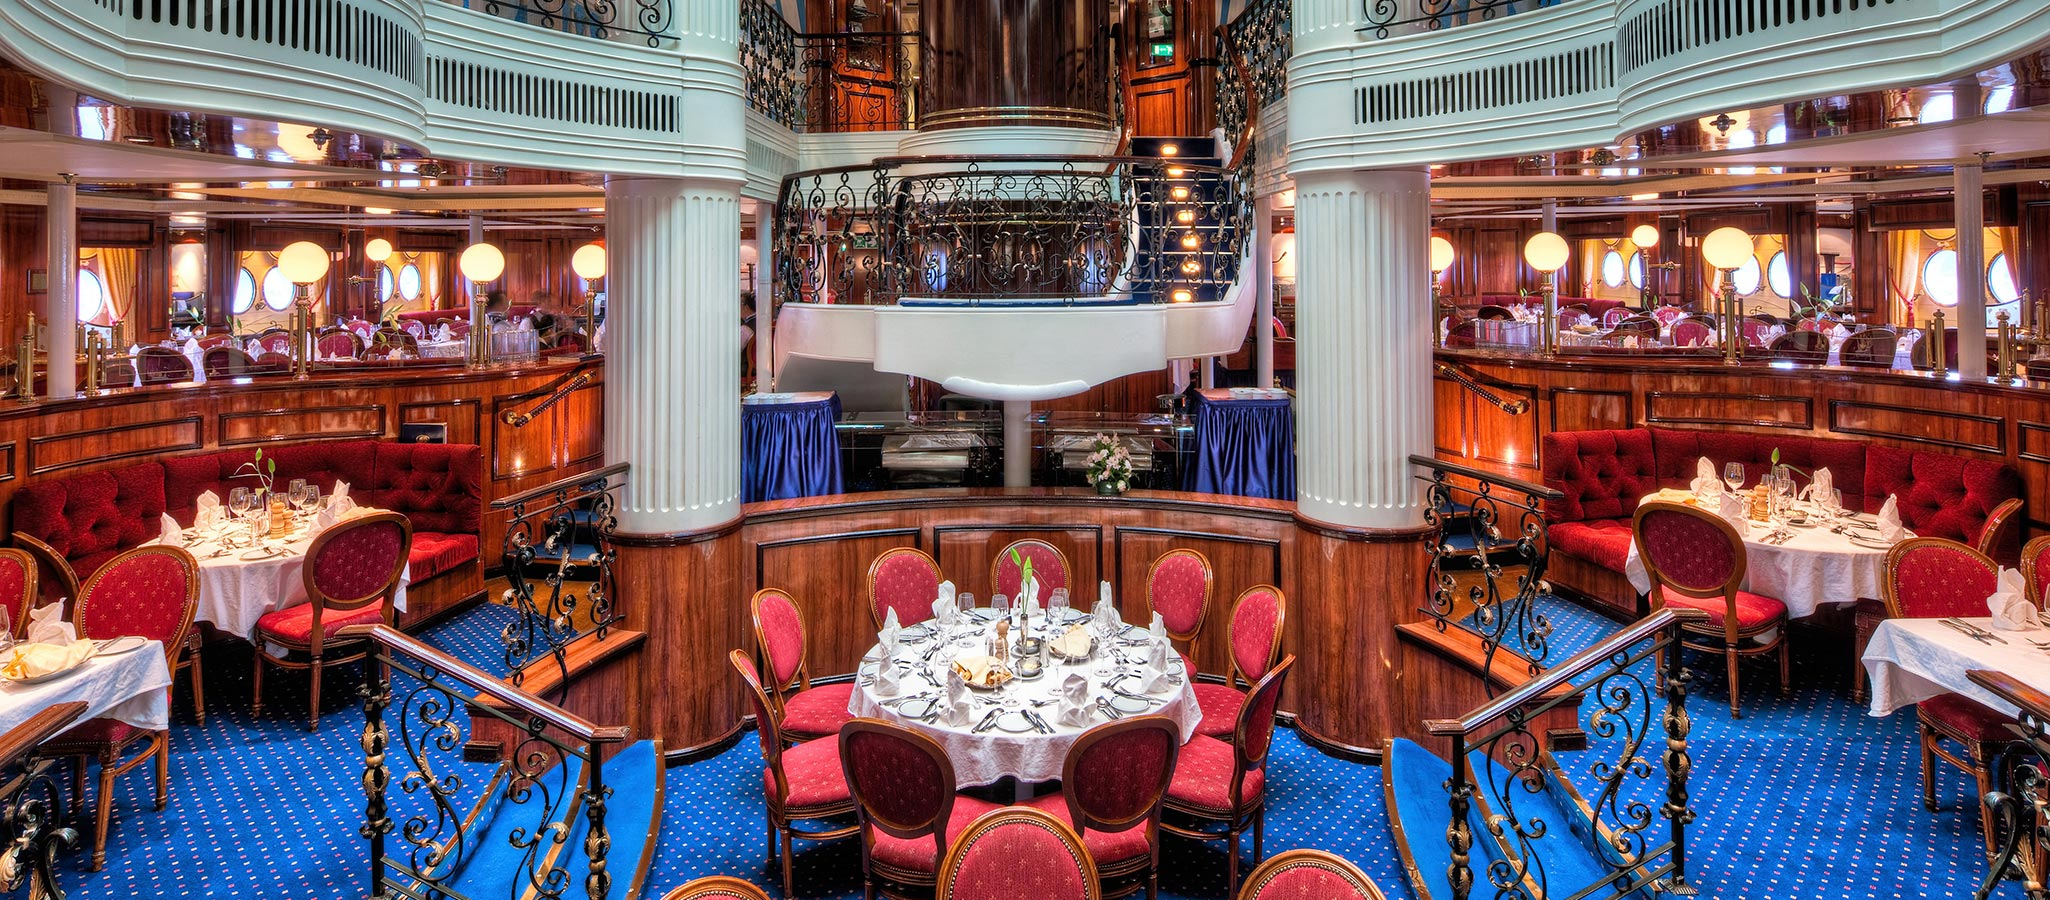 Just as spectacular: the atrium restaurant in the style of a swanky windjammer. A worthy setting for a gala dinner.